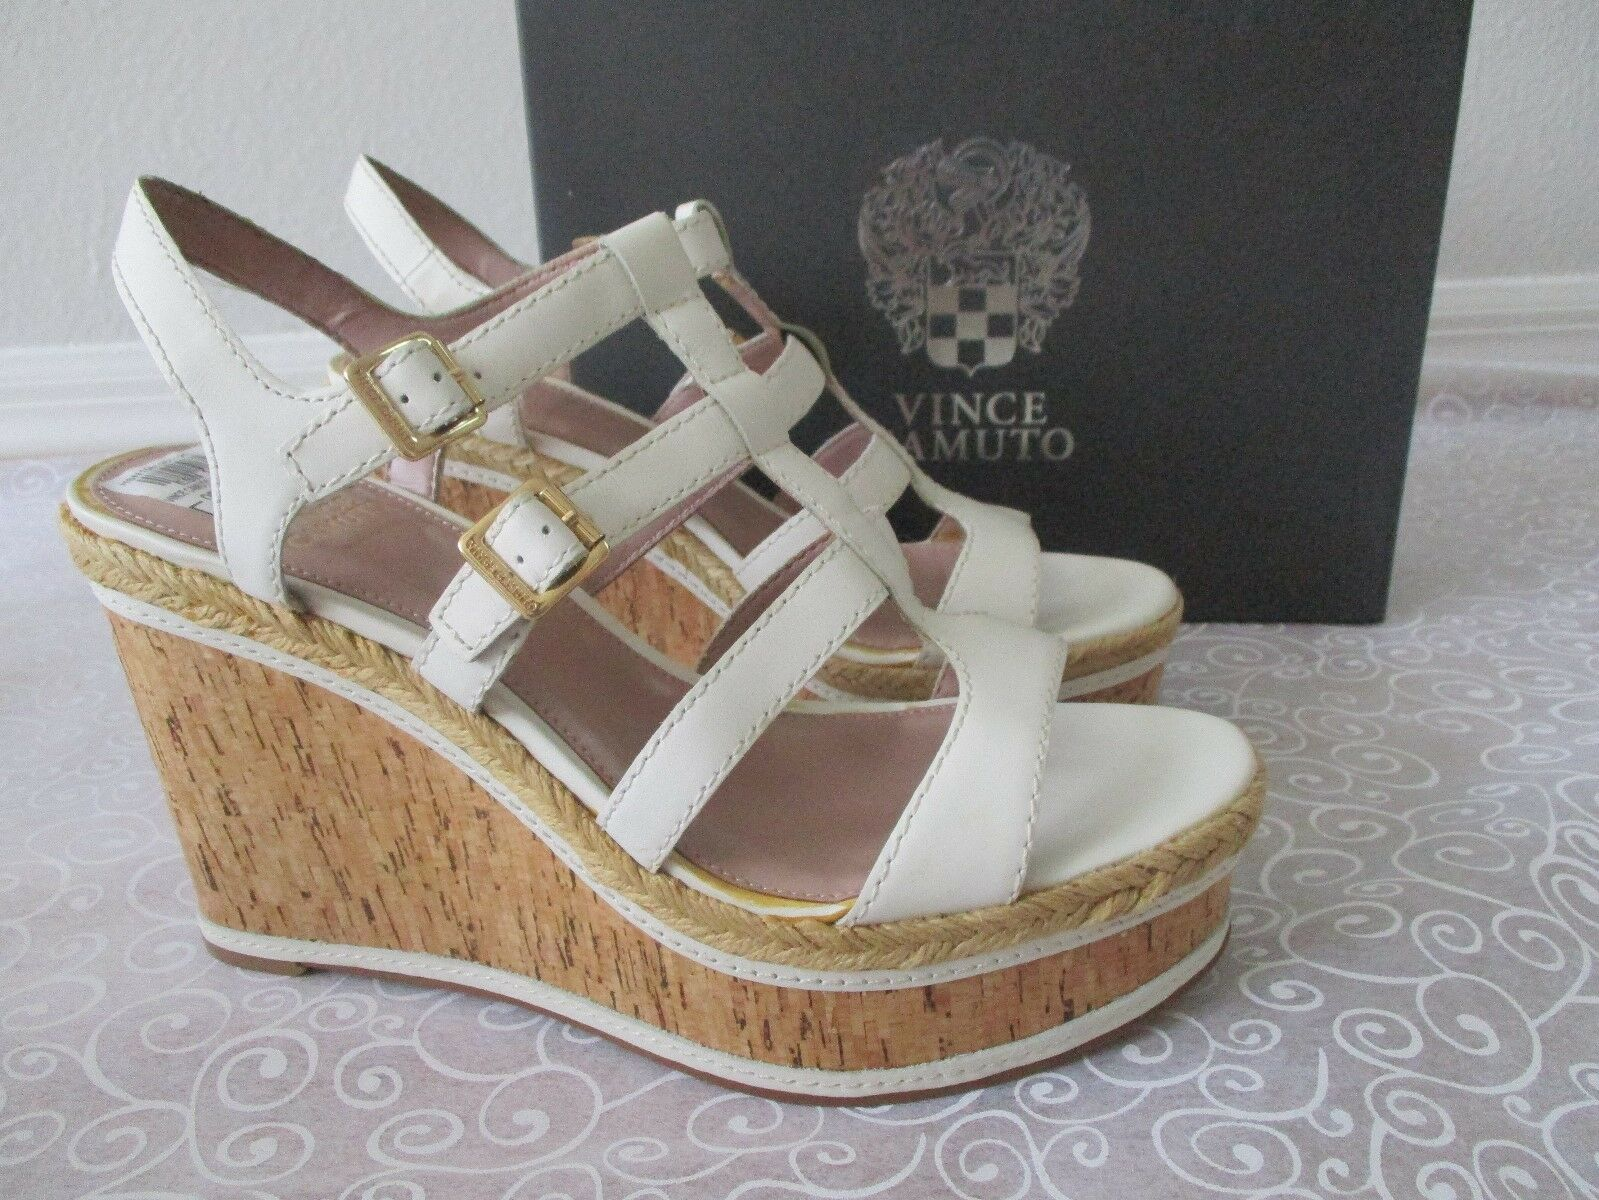 $99 VINCE CAMUTO OFF WHITE LEATHER WEDGE STRAPPY SHOES SIZE 11 M - NEW